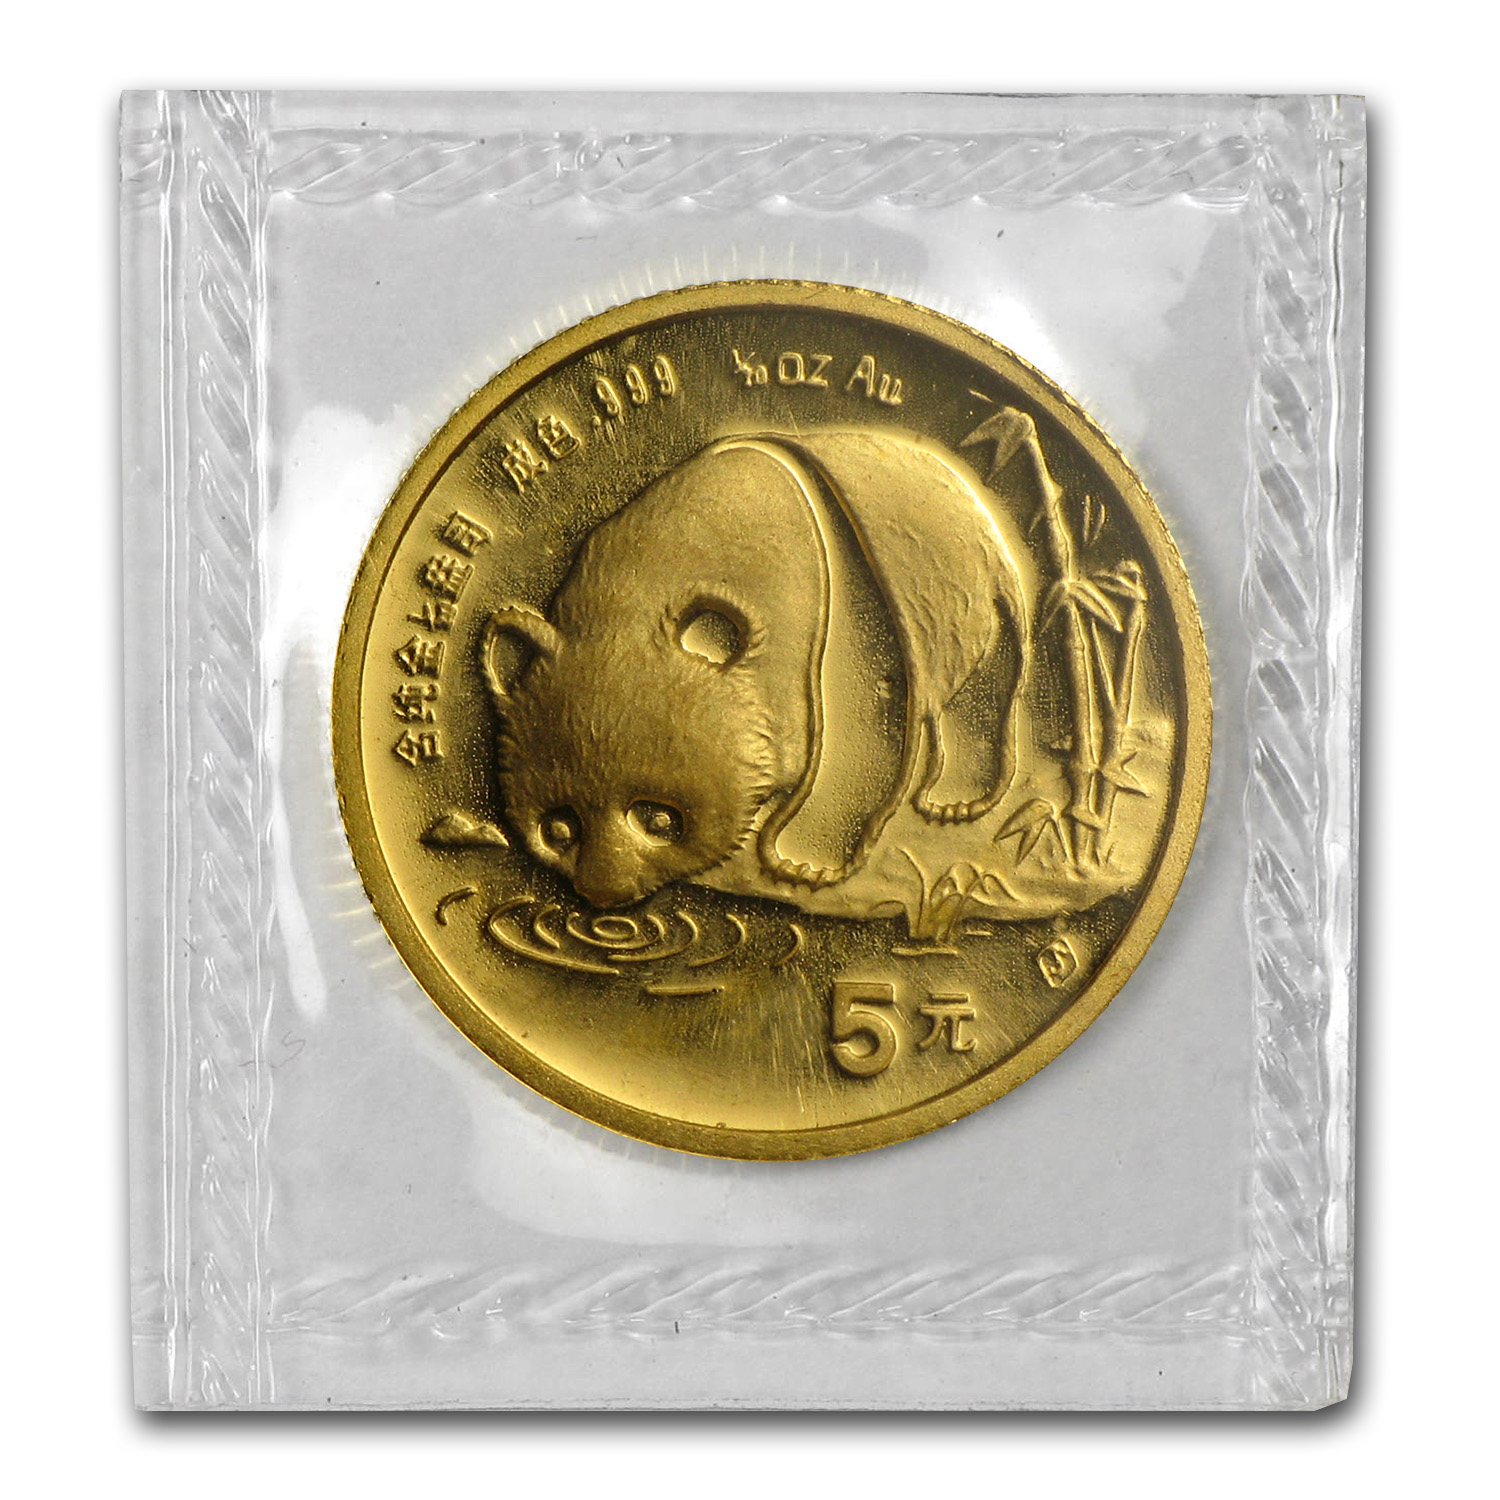 1987-S 1/20 oz Gold Chinese Panda BU (Sealed)